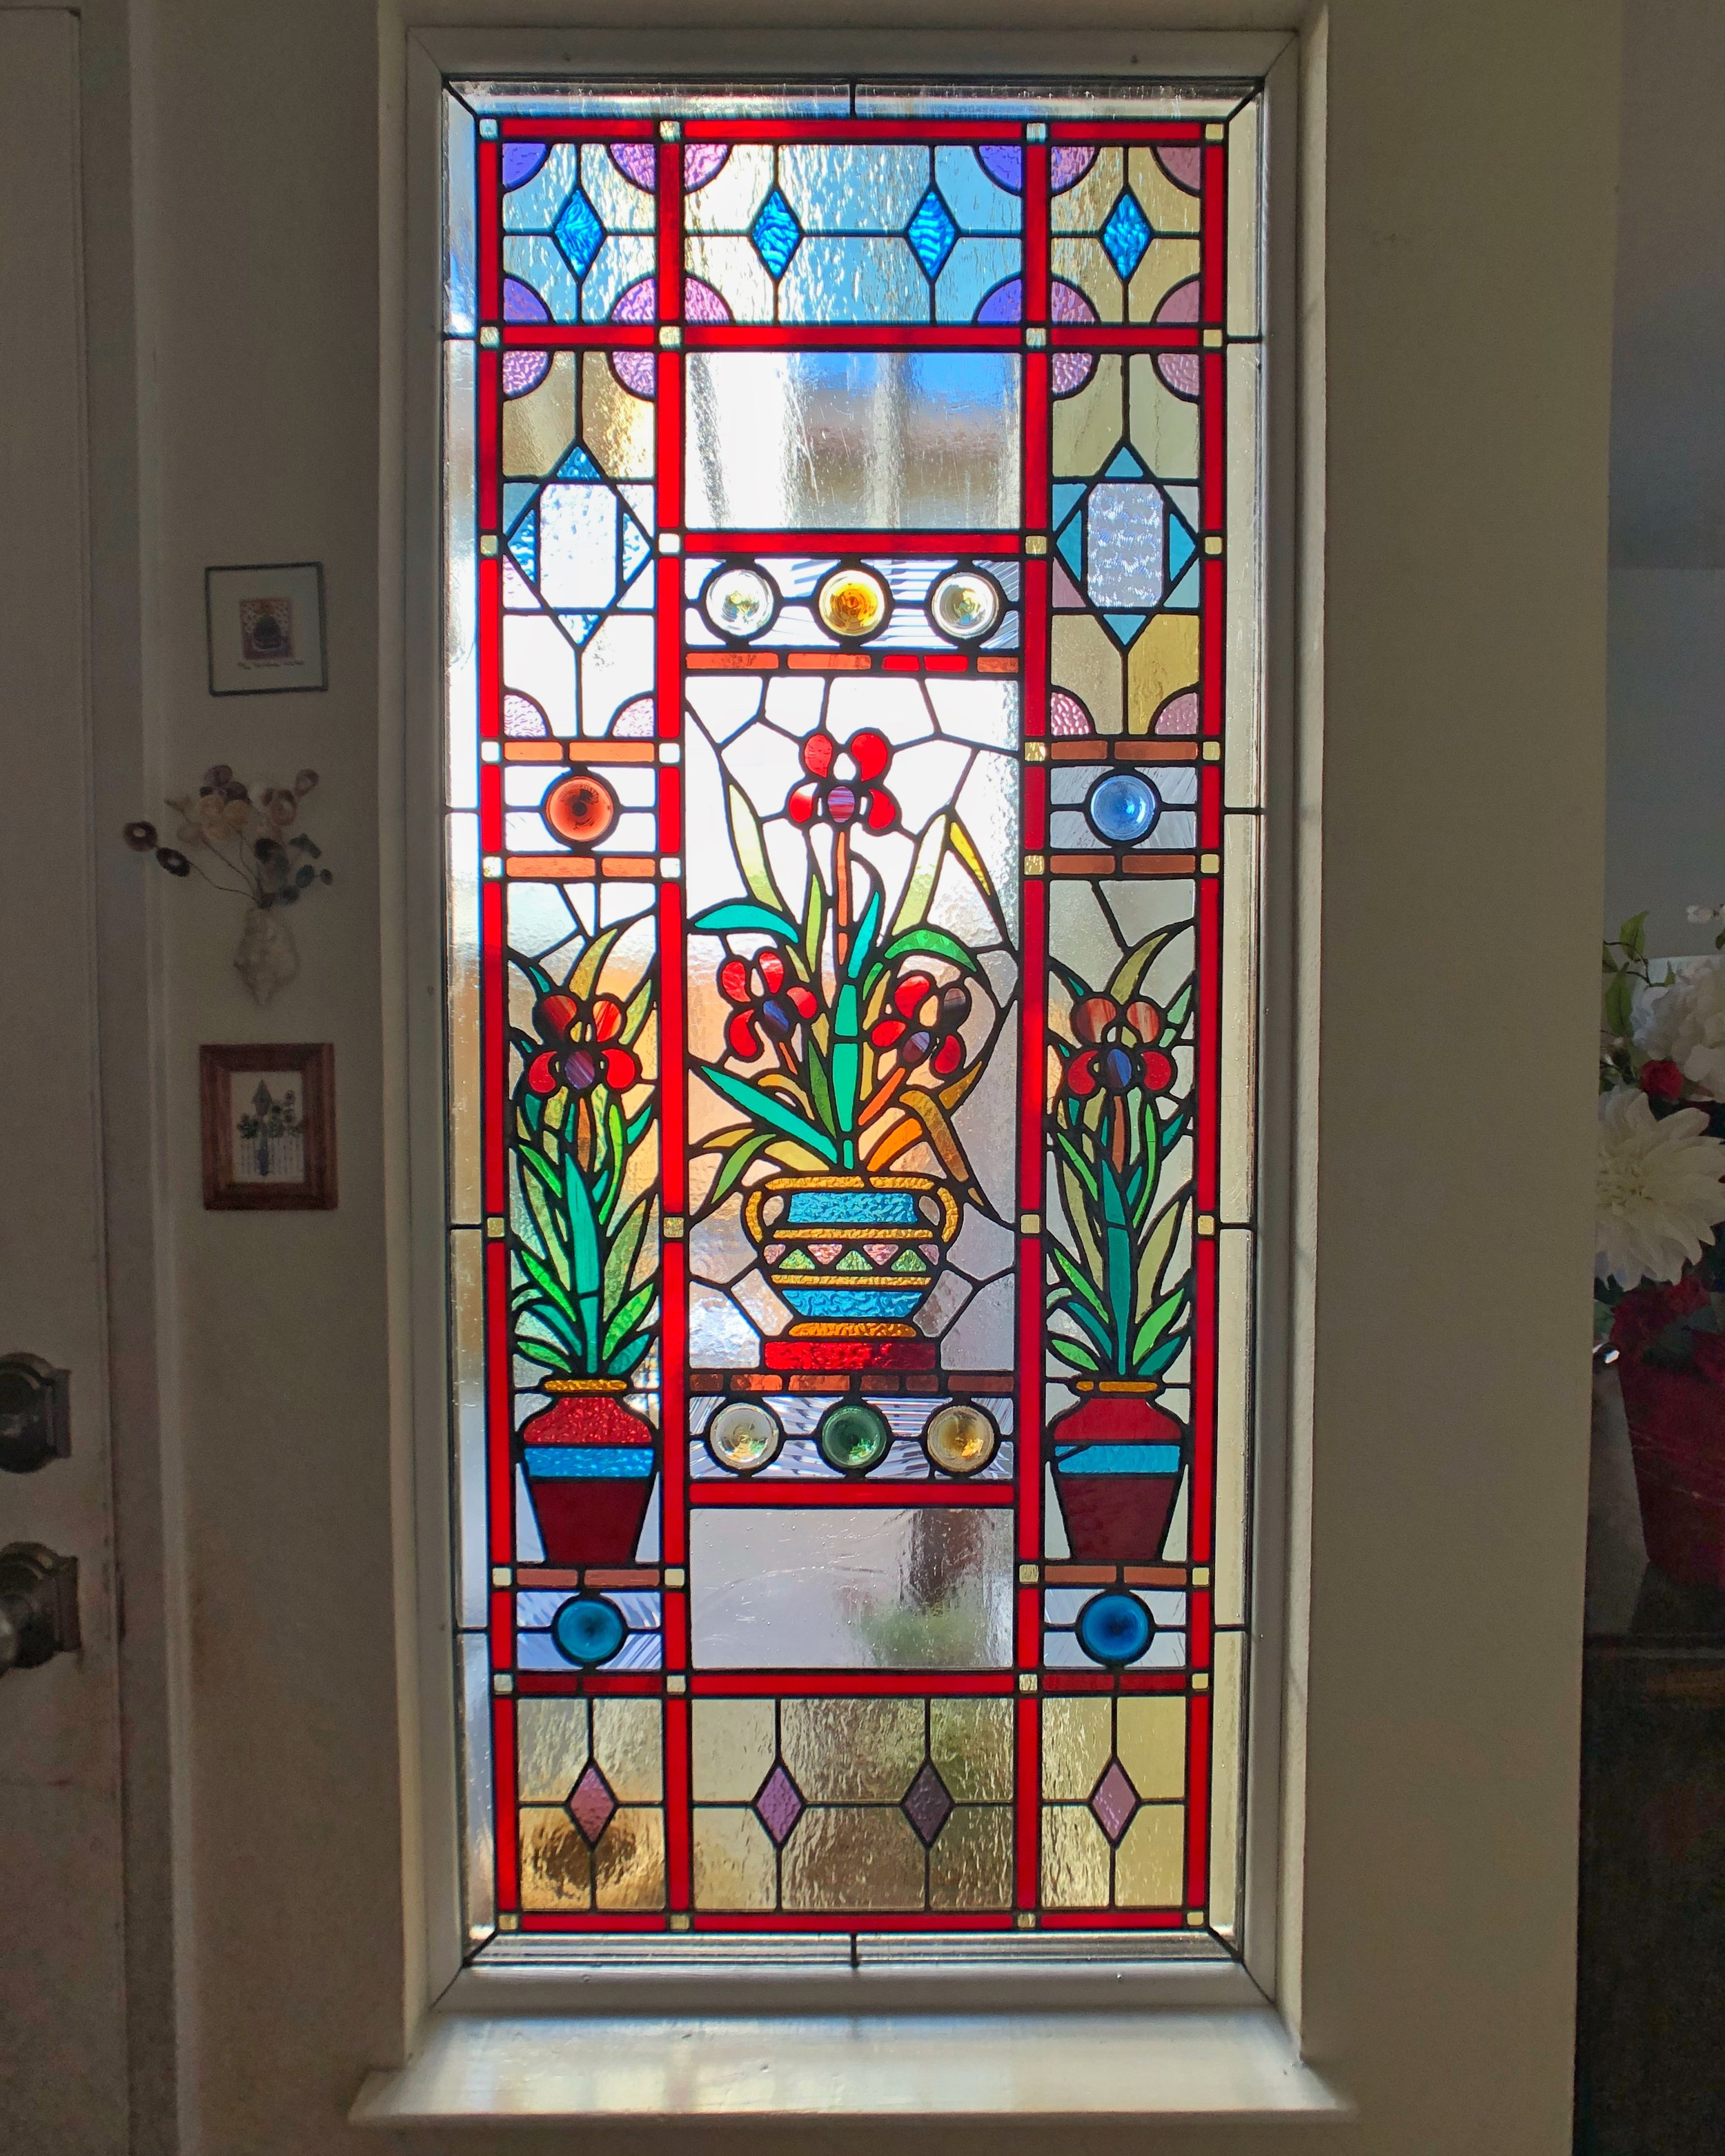 stained glass restoration british charm rondel floral before and after leaded glass legacy glass studios california front entry sidelight colorful custom glass repair front view.jpg